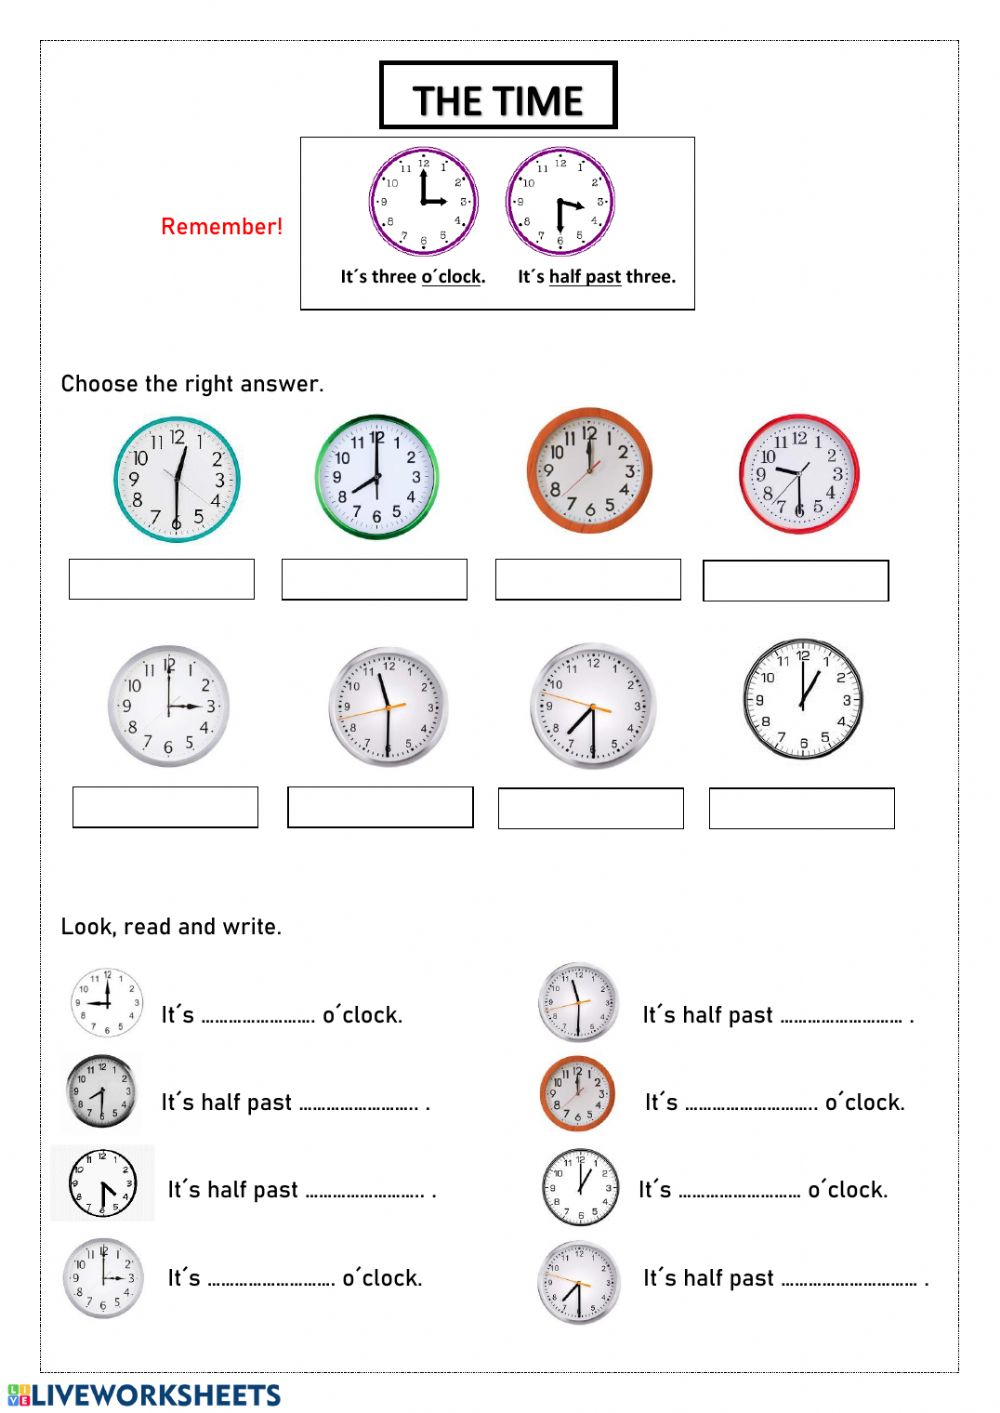 The time exercise for Grade 20